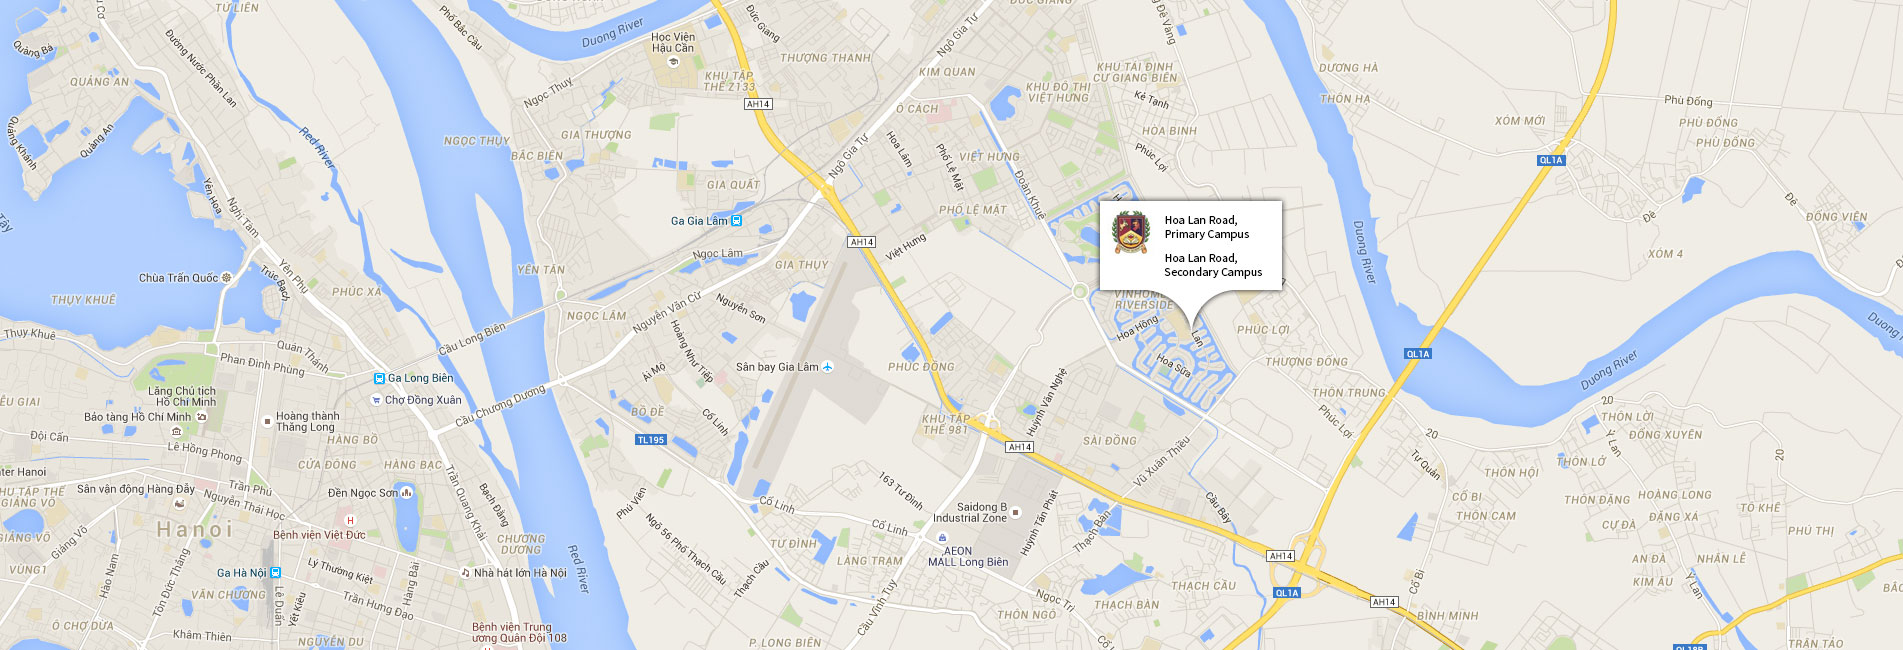 A map of our campus locations